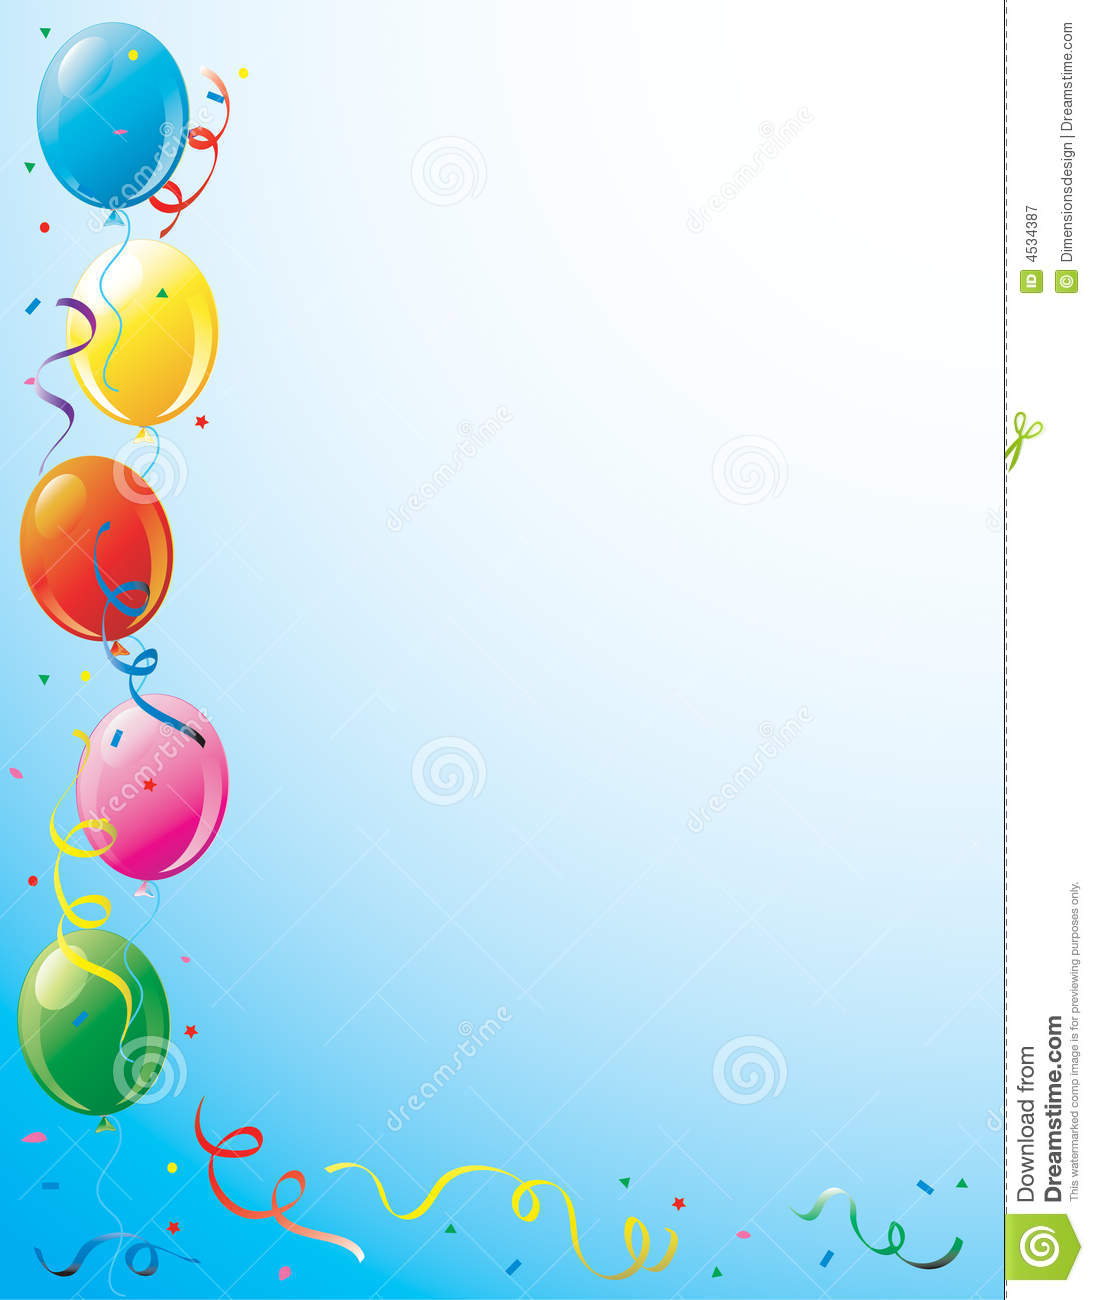 Balloons And Confetti Border Stock Image - Image: 14168281